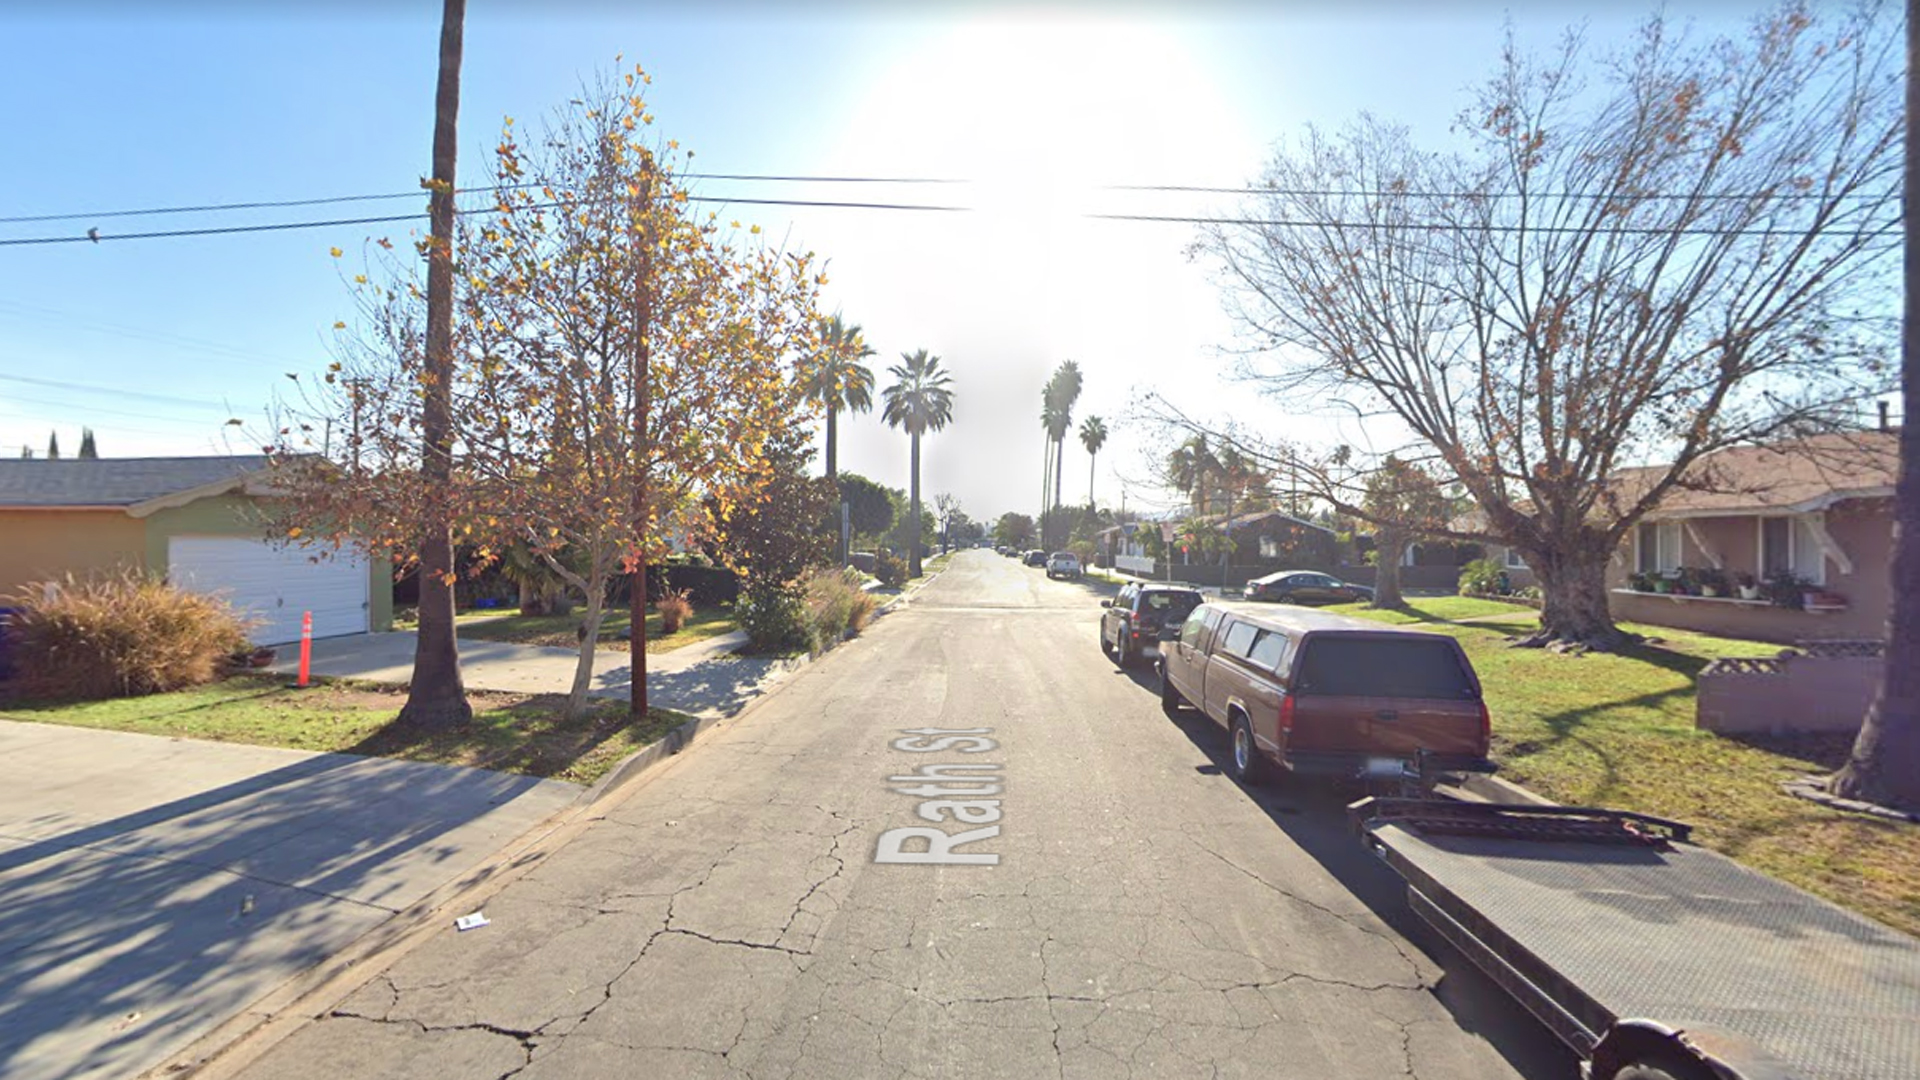 The 14600 block of Rath Street in the unincorporated county area of West Valinda, as viewed in a Google Street View image.